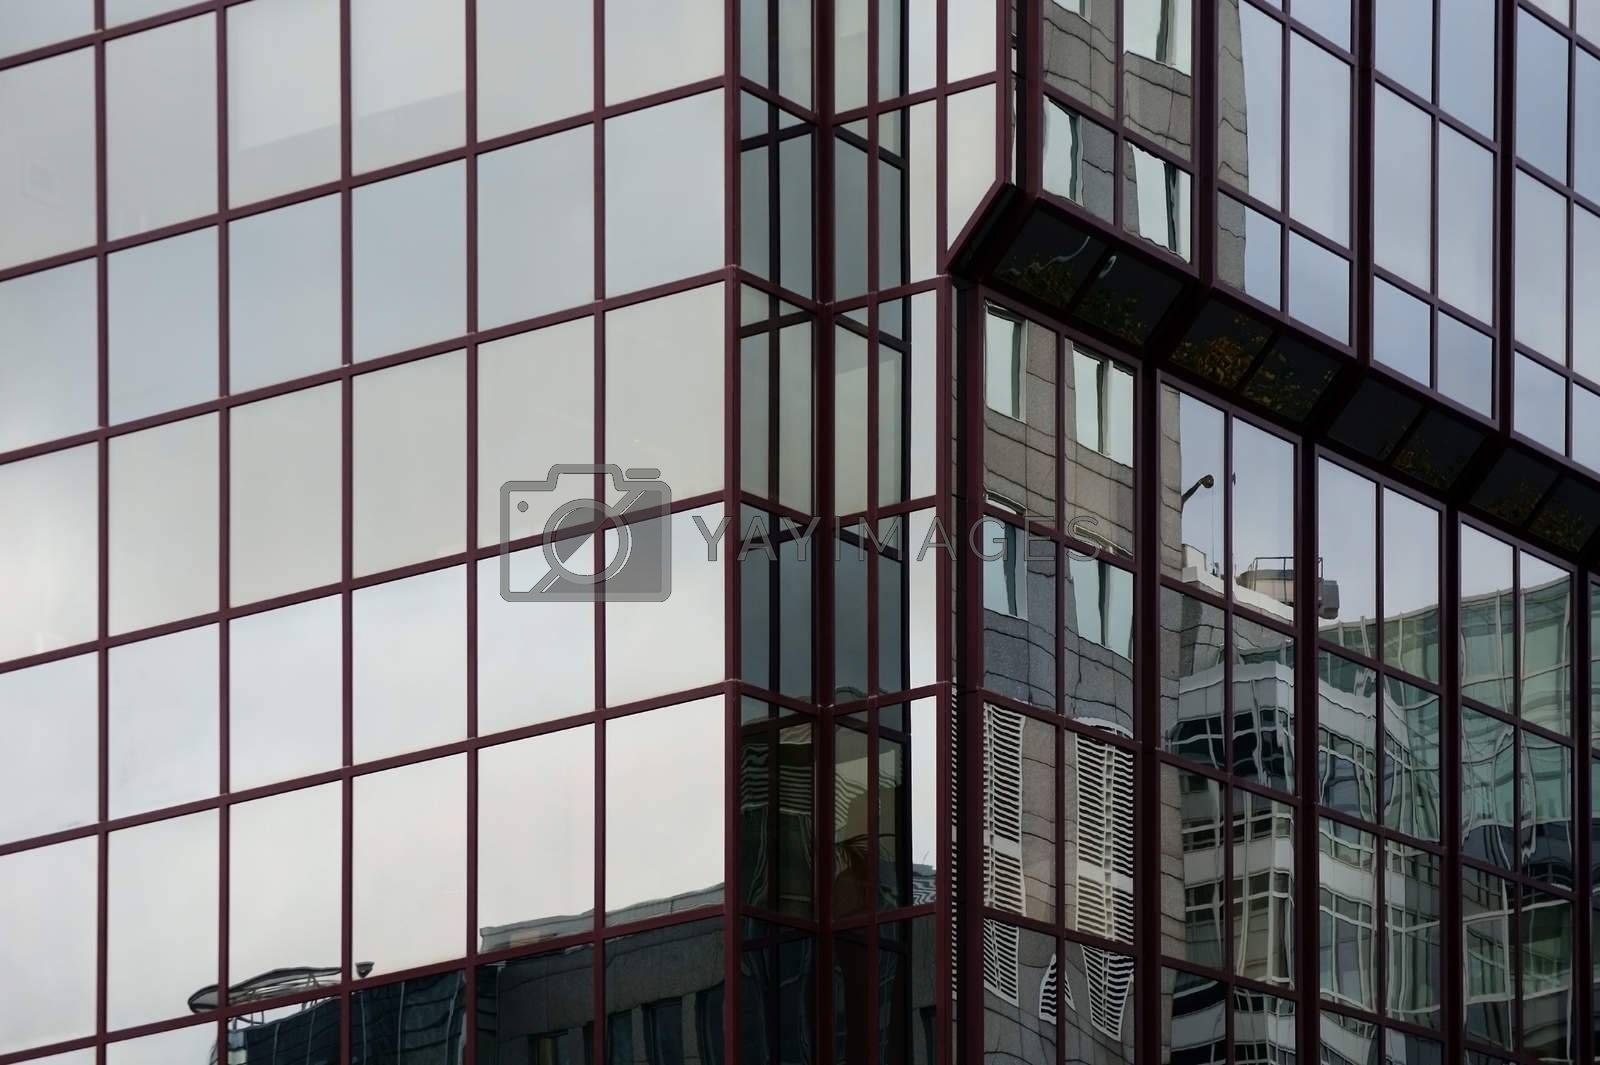 The reflection of buildings in the modern mirror facade of an office building and residential building.